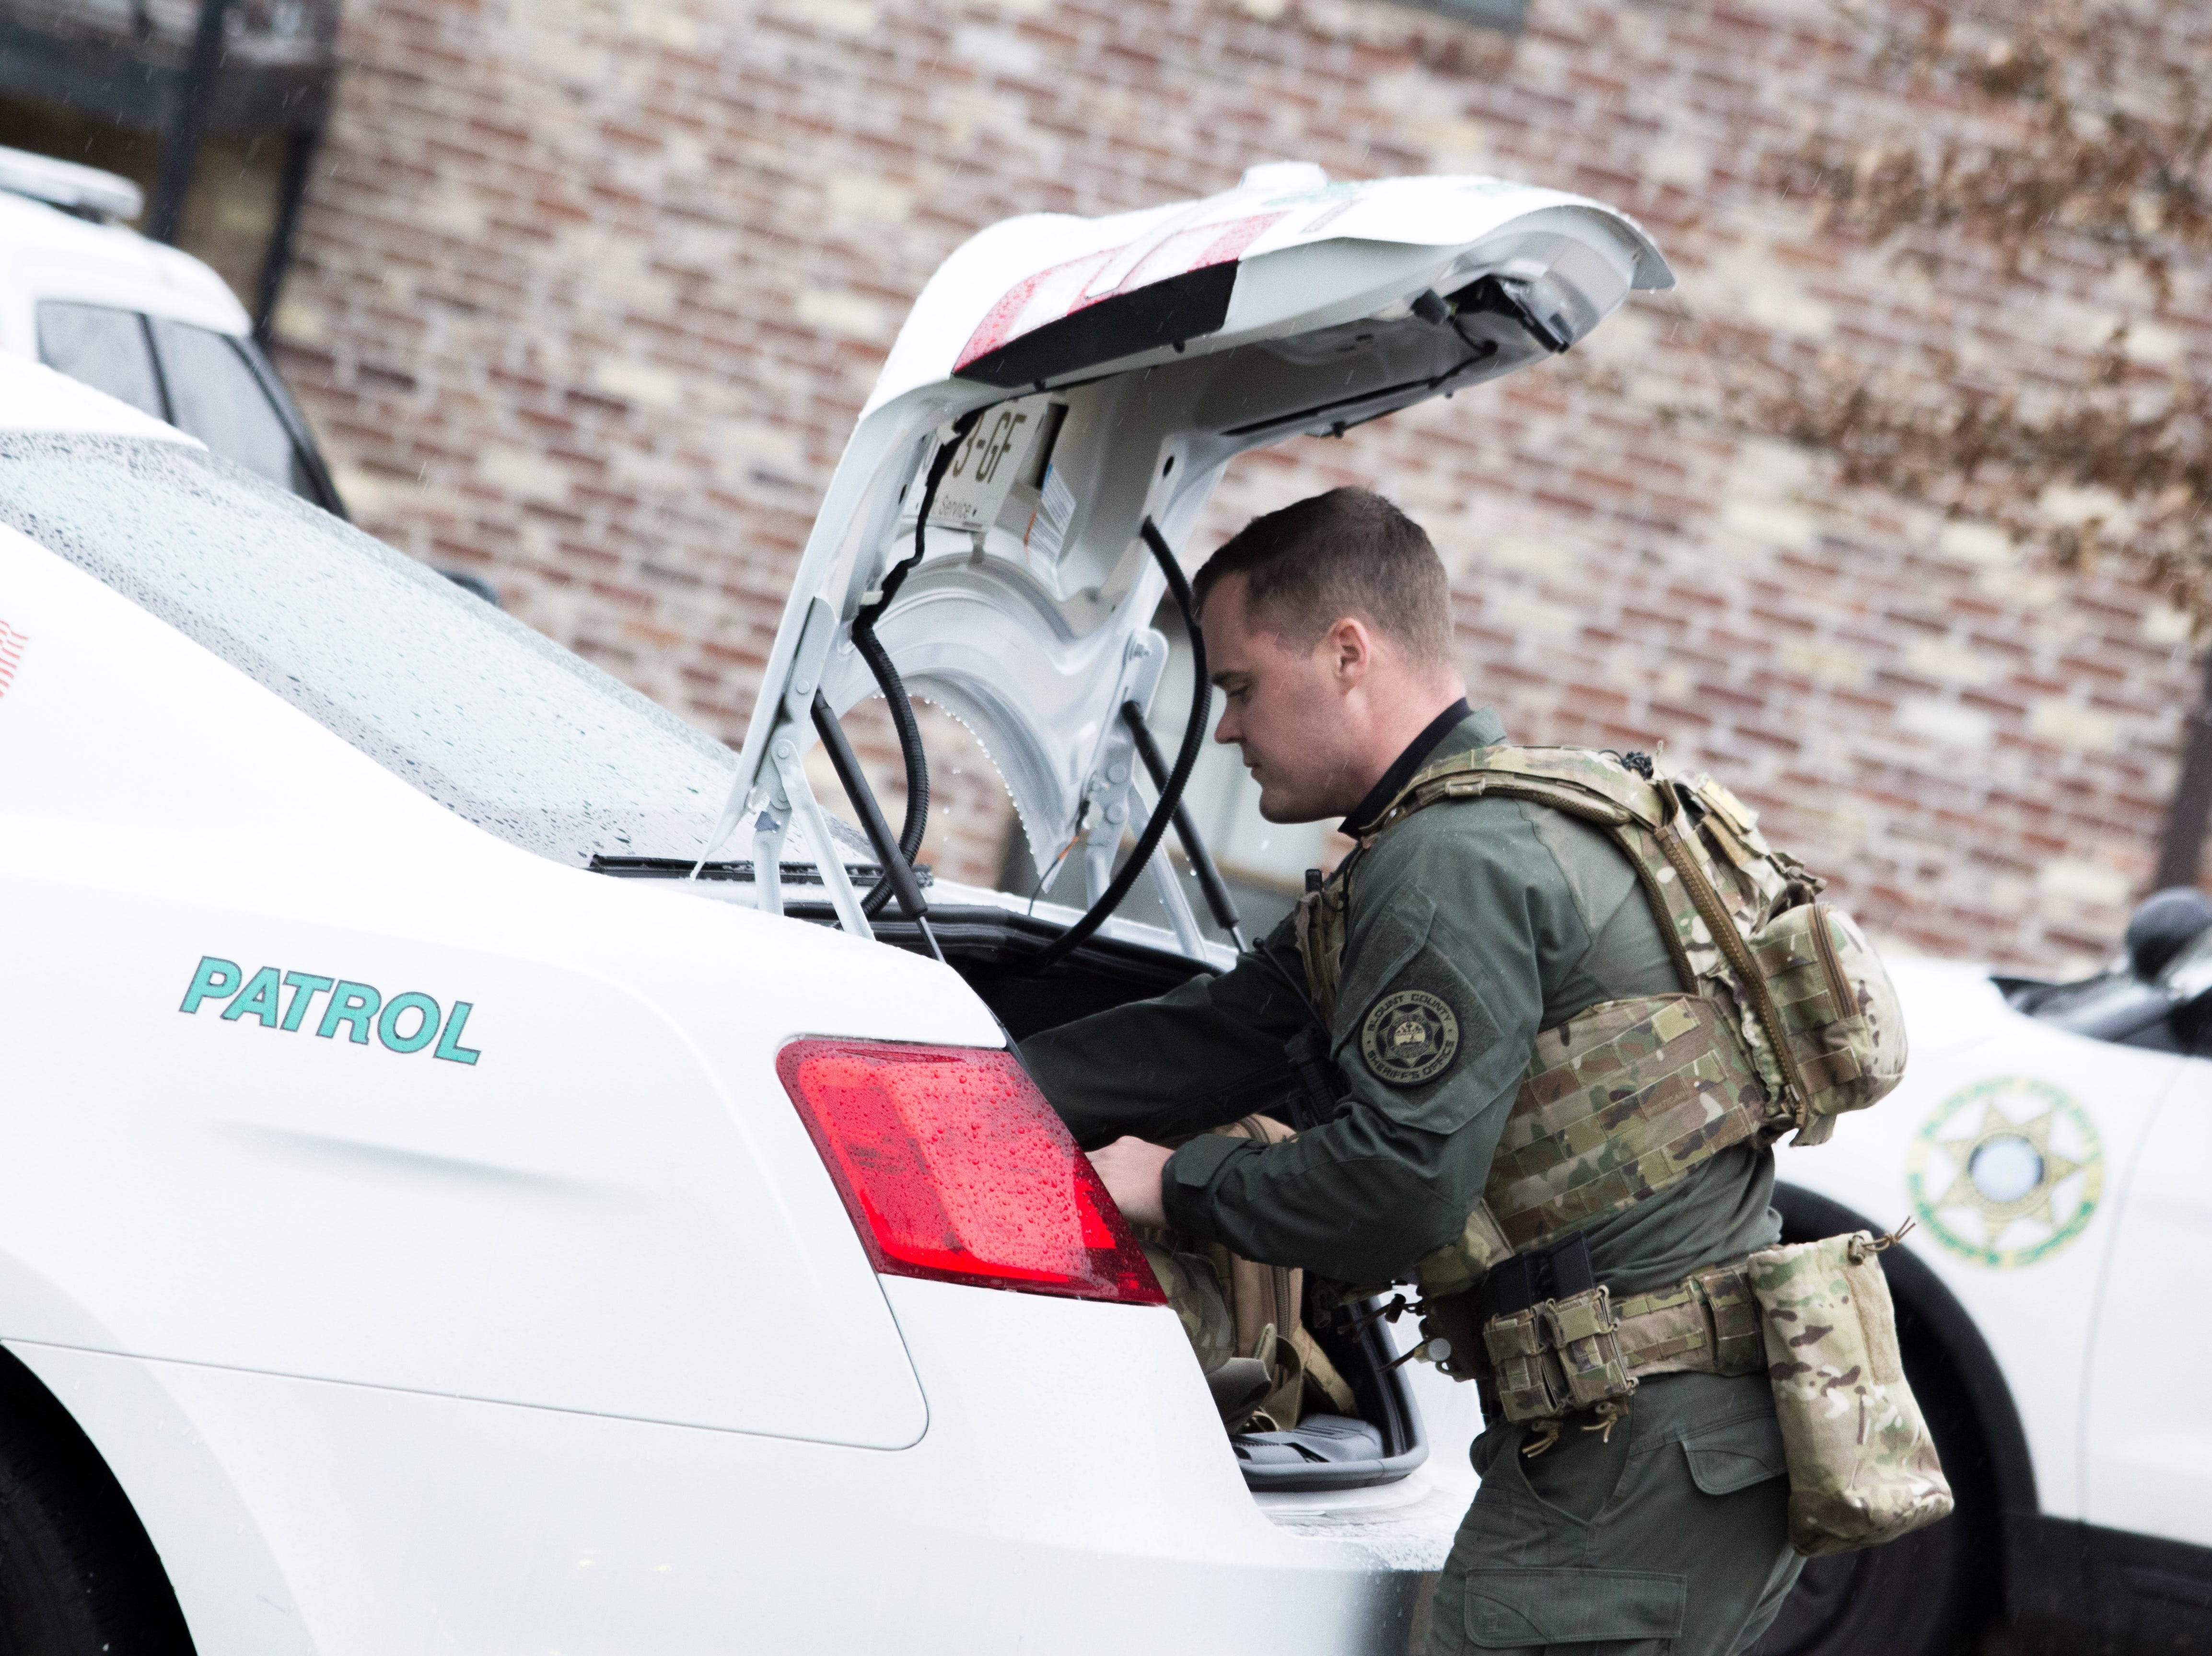 An officer grabs gear from the trunk of a patrol car during a standoff between the Blount County Sheriff's Office and a 21-year-old man. The man was killed during the standofffollowing shots from officers and a self-inflicted wound on Dec. 8, 2018.